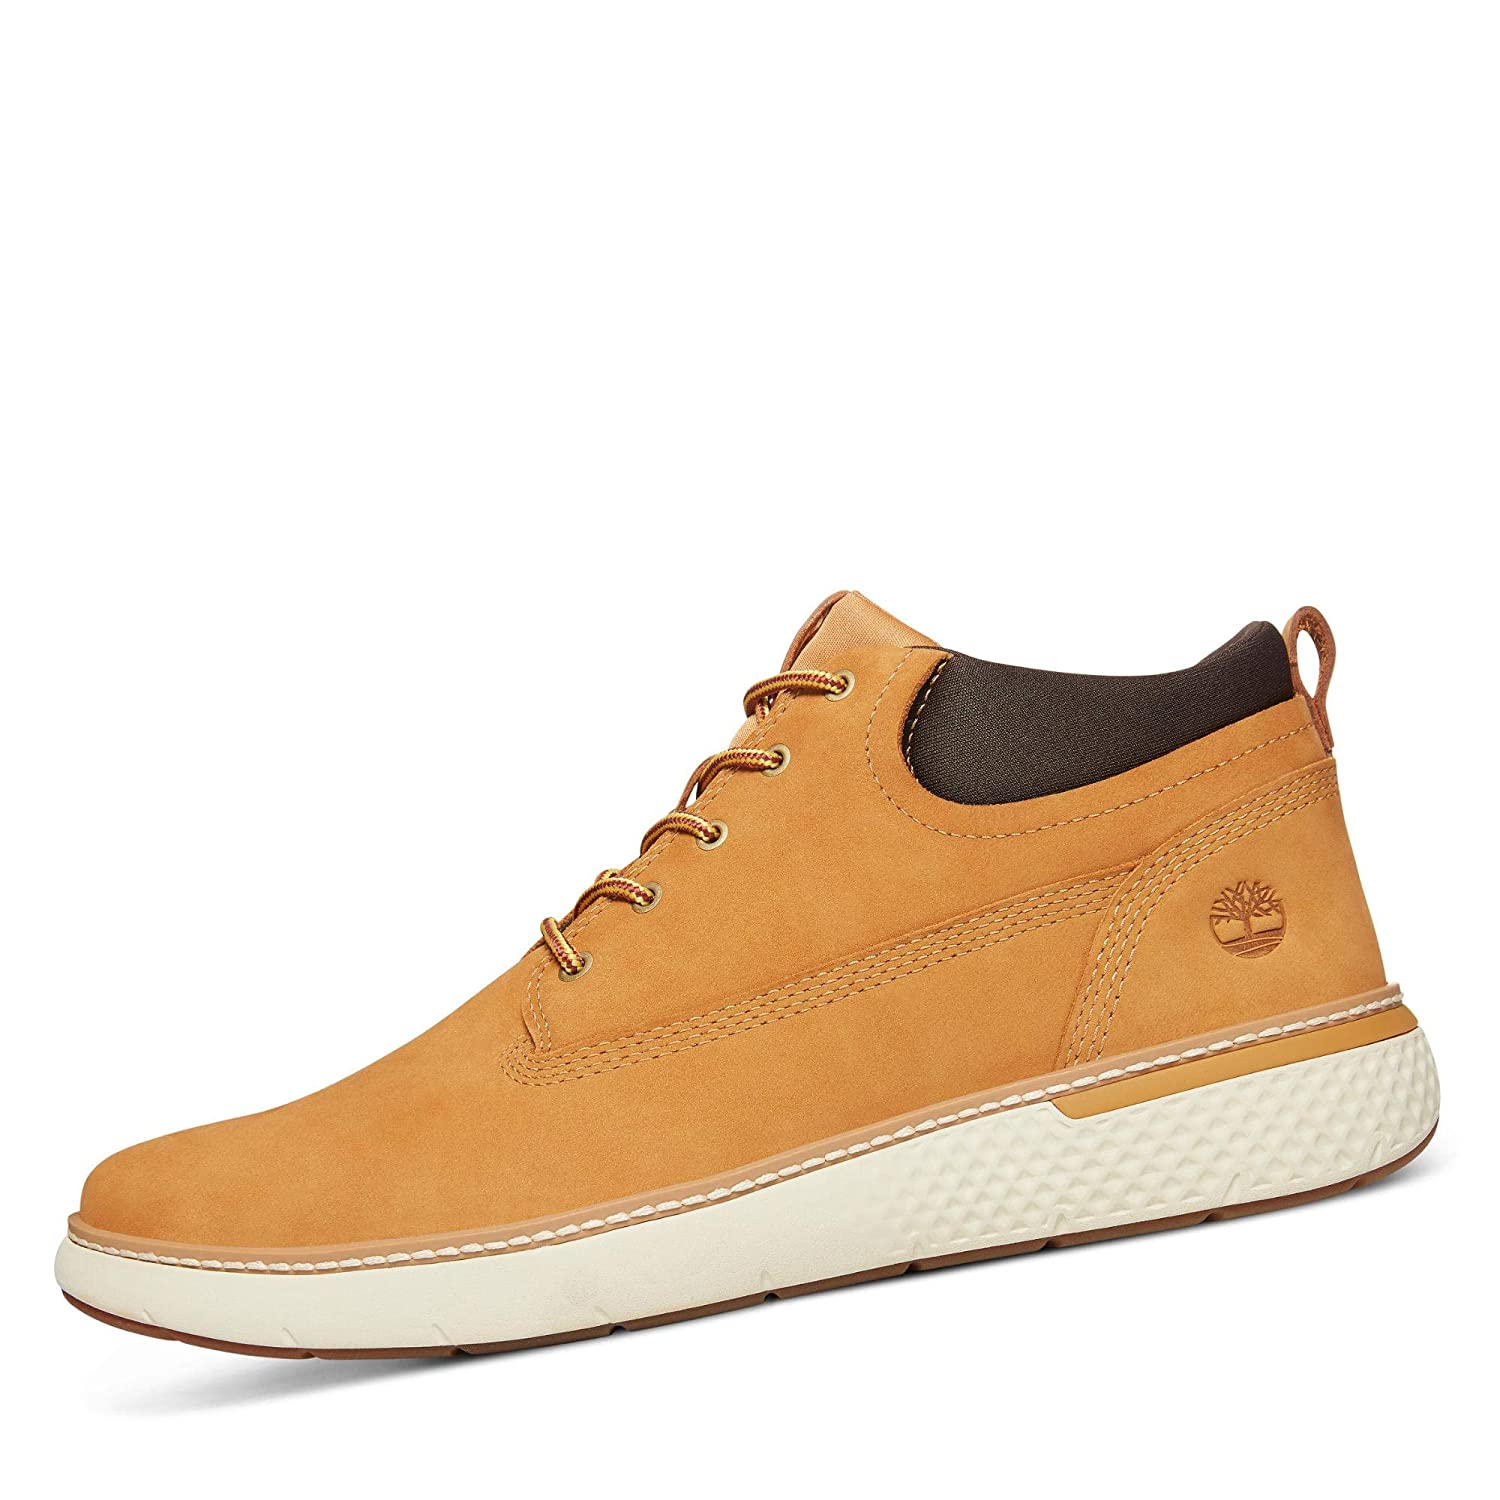 Timberland Cross Mark PT PT PT Chukka Wheat CA1TR8, Scarpe Sportive | Rifornimento Sufficiente